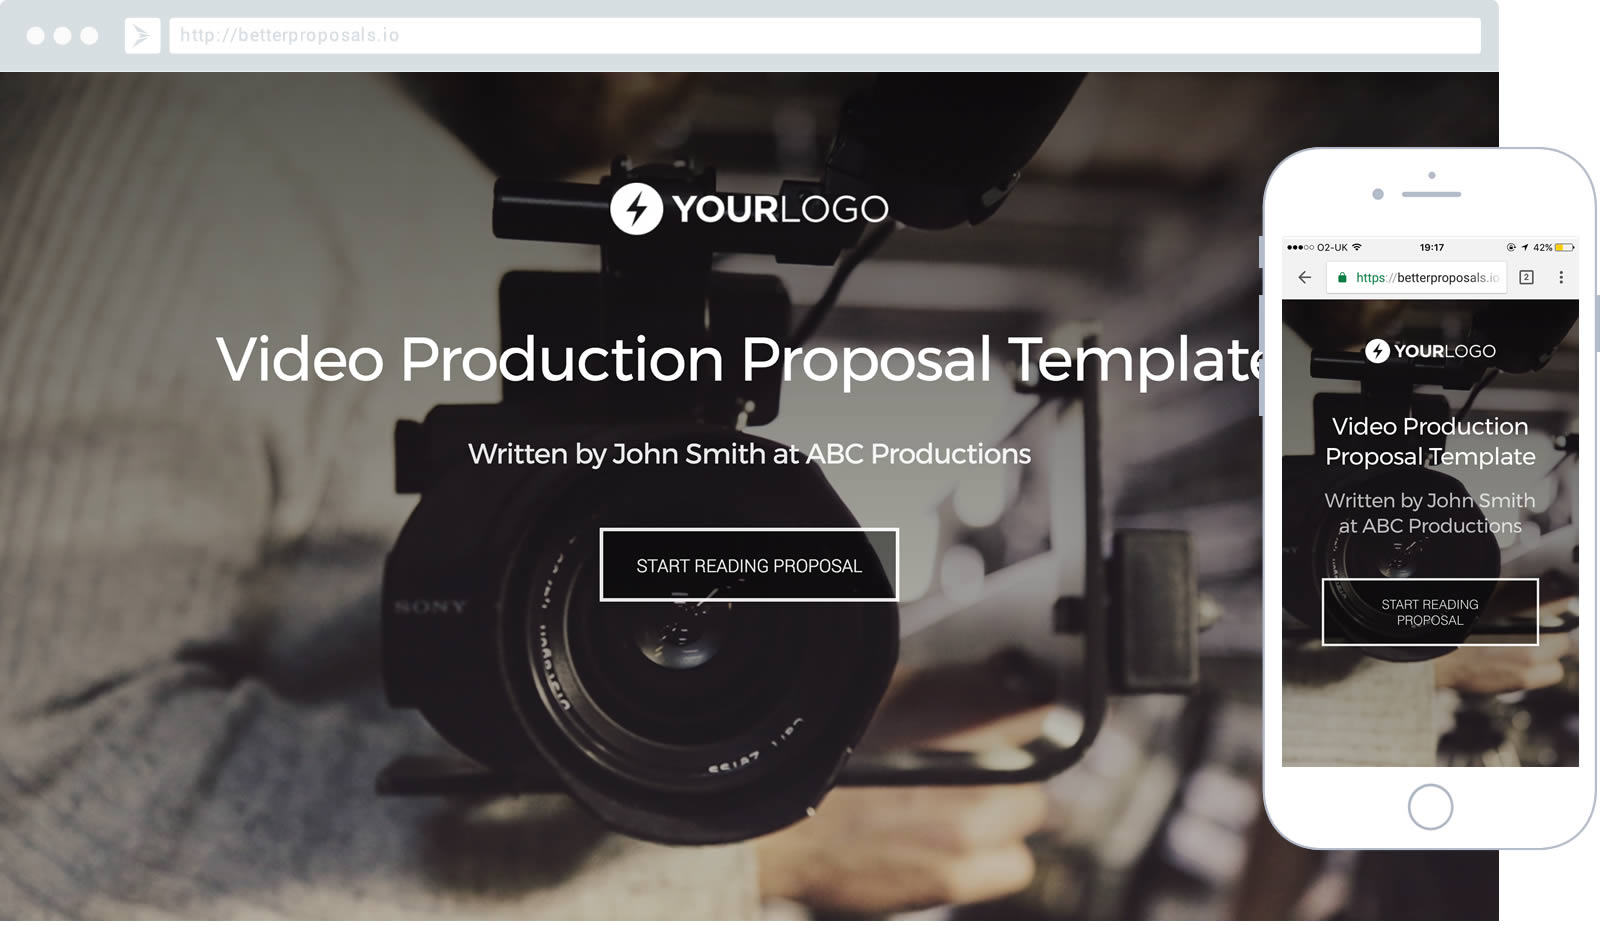 video production proposal template proposal template for video production company doing regular video work